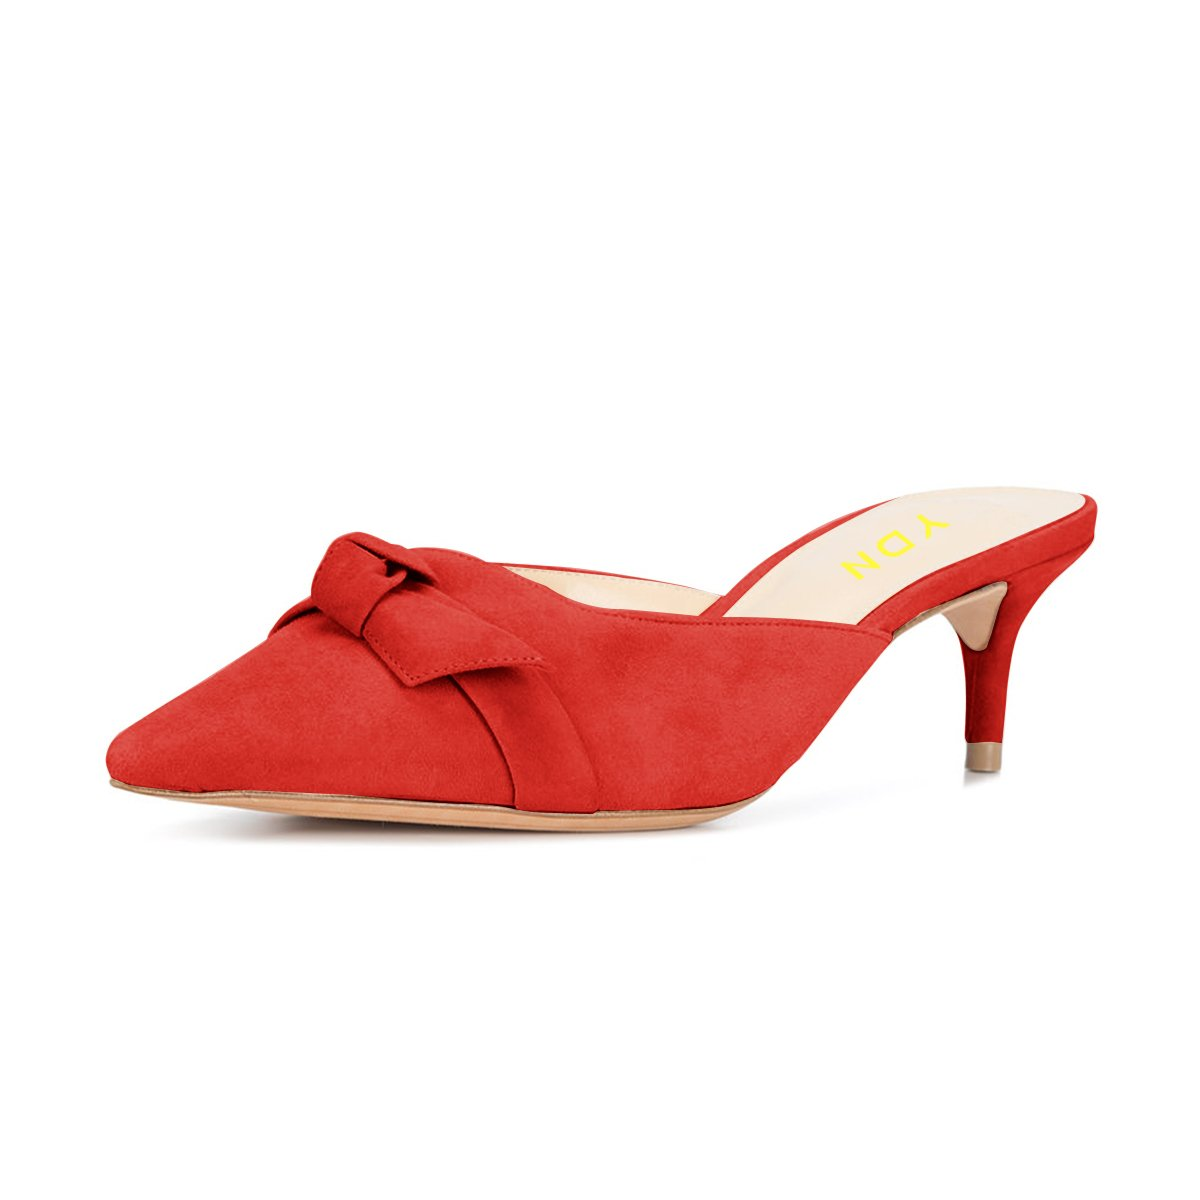 YDN Womens Low Heels Slide Sandals Pointed Toe Kitten Mules Slip on Pumps with Chic Bow Red 10